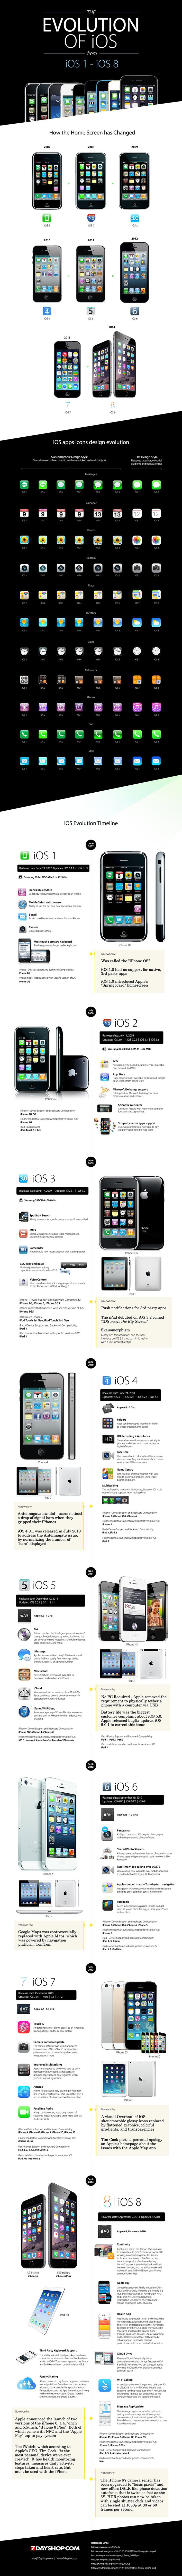 Evolution of the iOS..